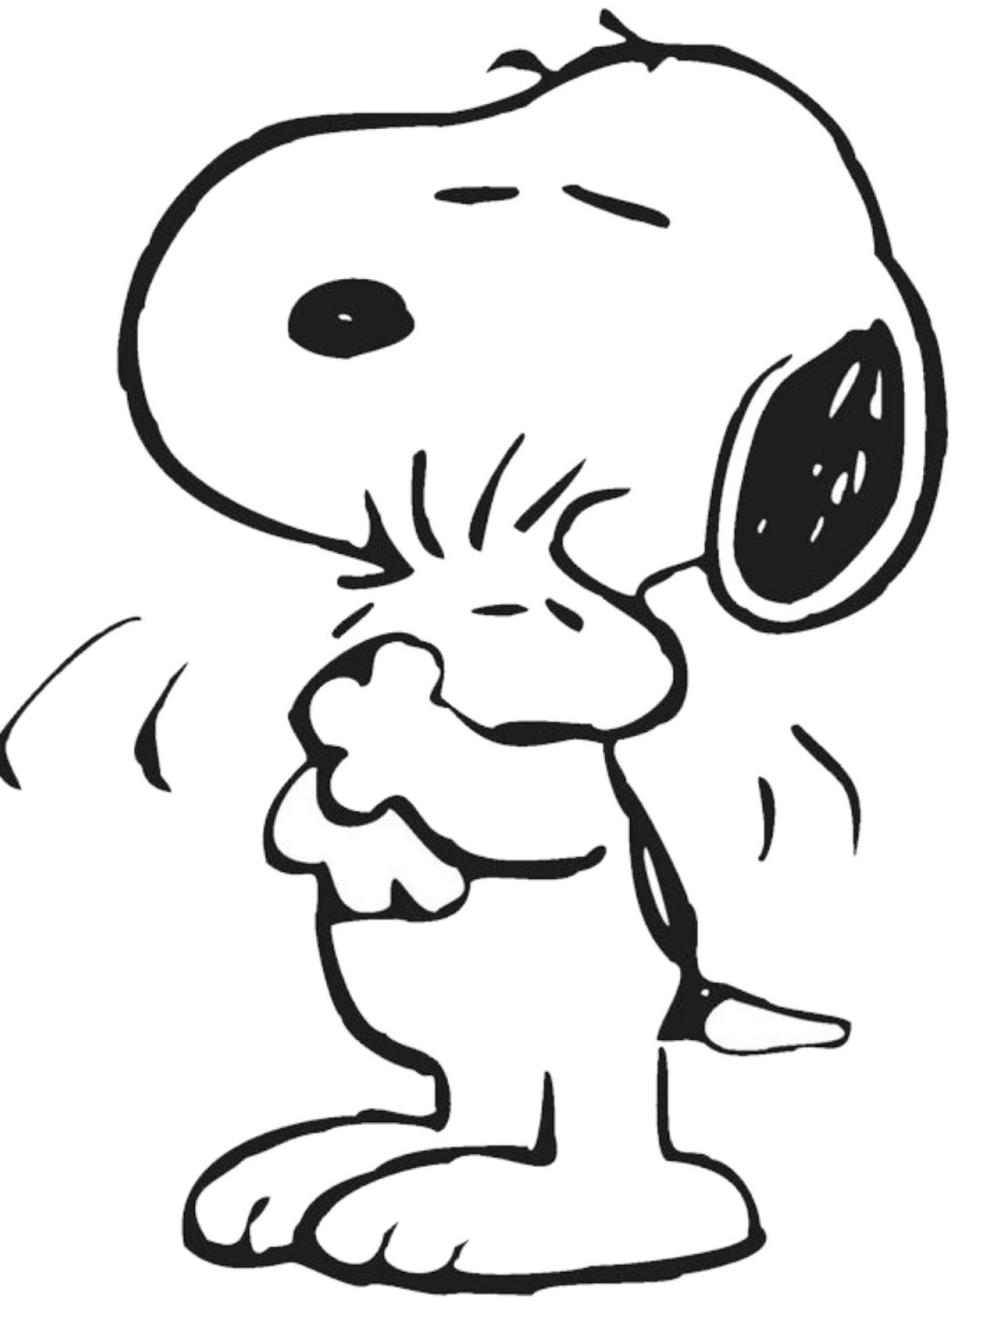 996x1325 Coloring Pages Snoopy And Woodstock Coloring Pages